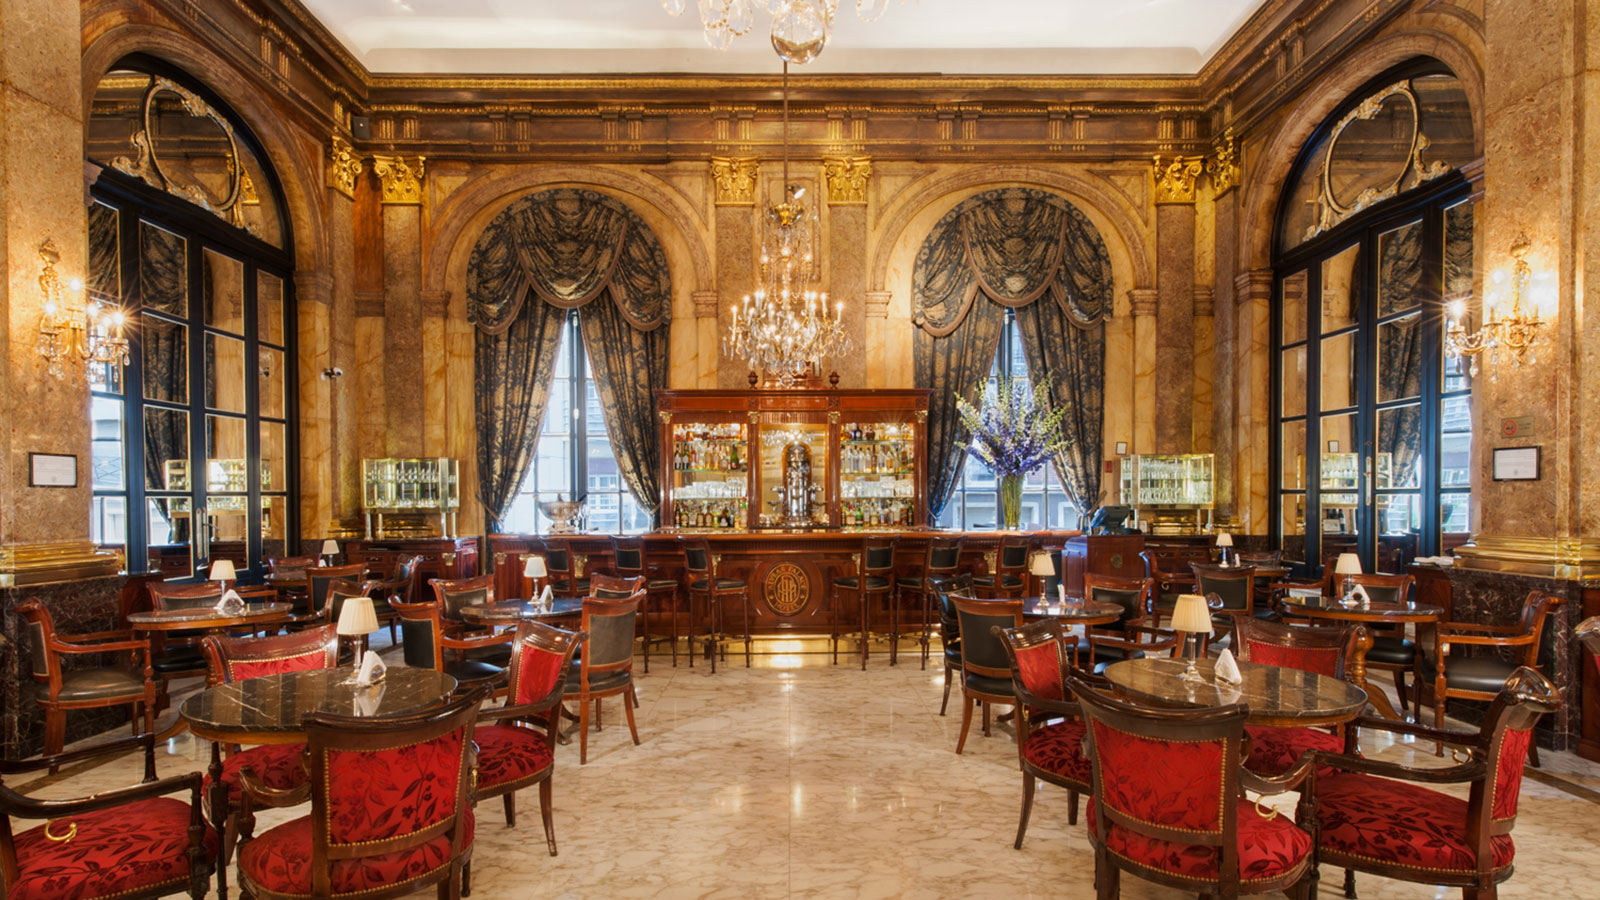 Interior restaurant at Alvear Palace Hotel in Buenos Aires, Argentina.